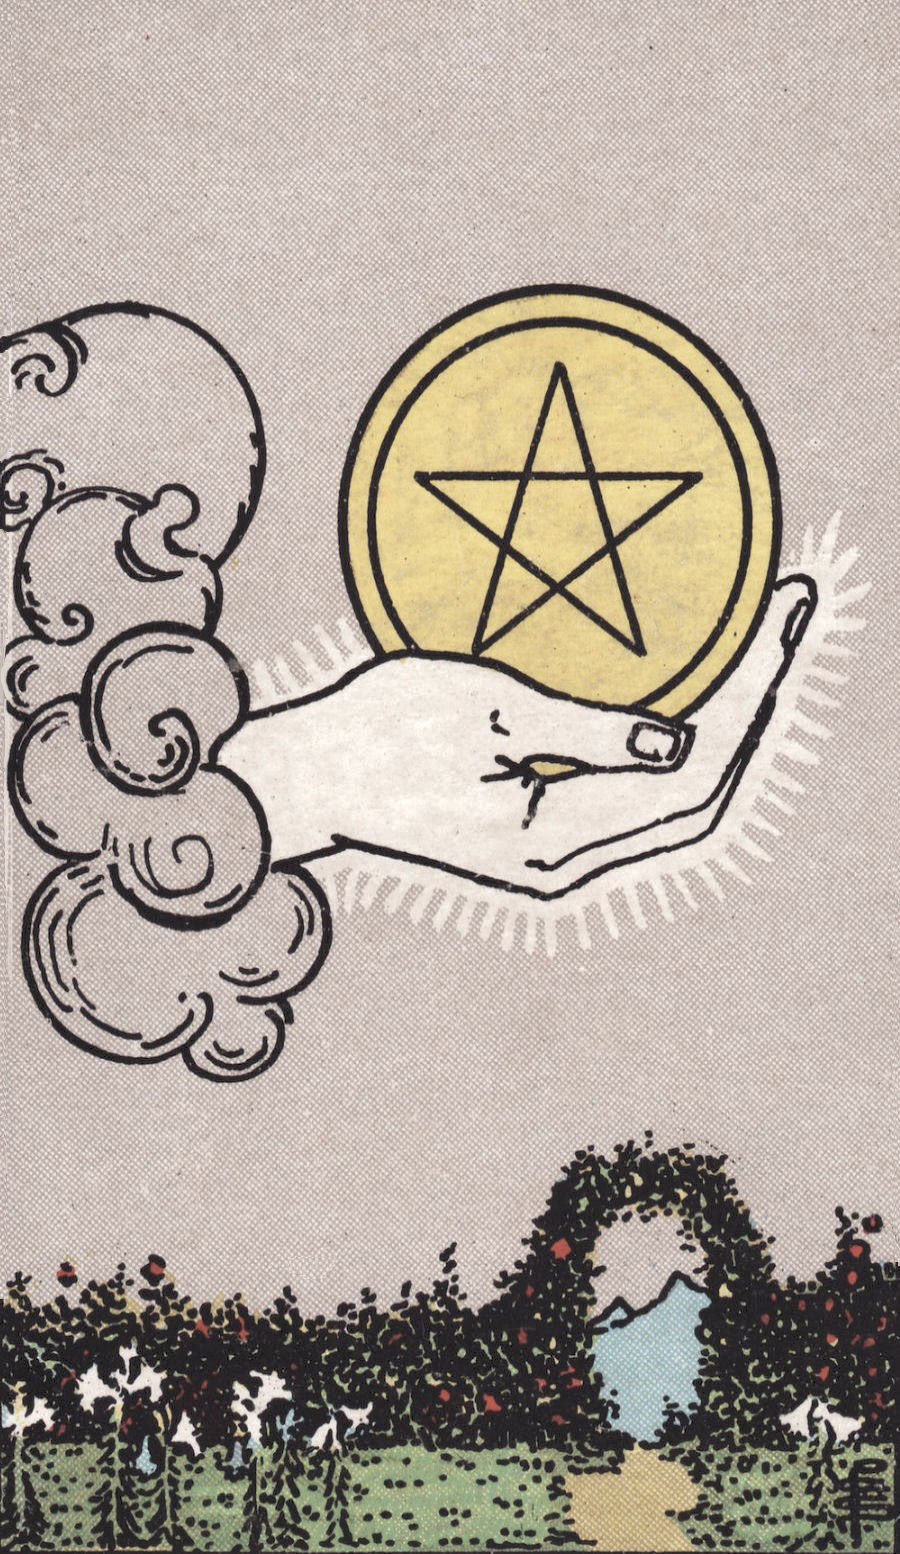 Rider Waite Smith Ace of Pentacles Tarot Card Meaning